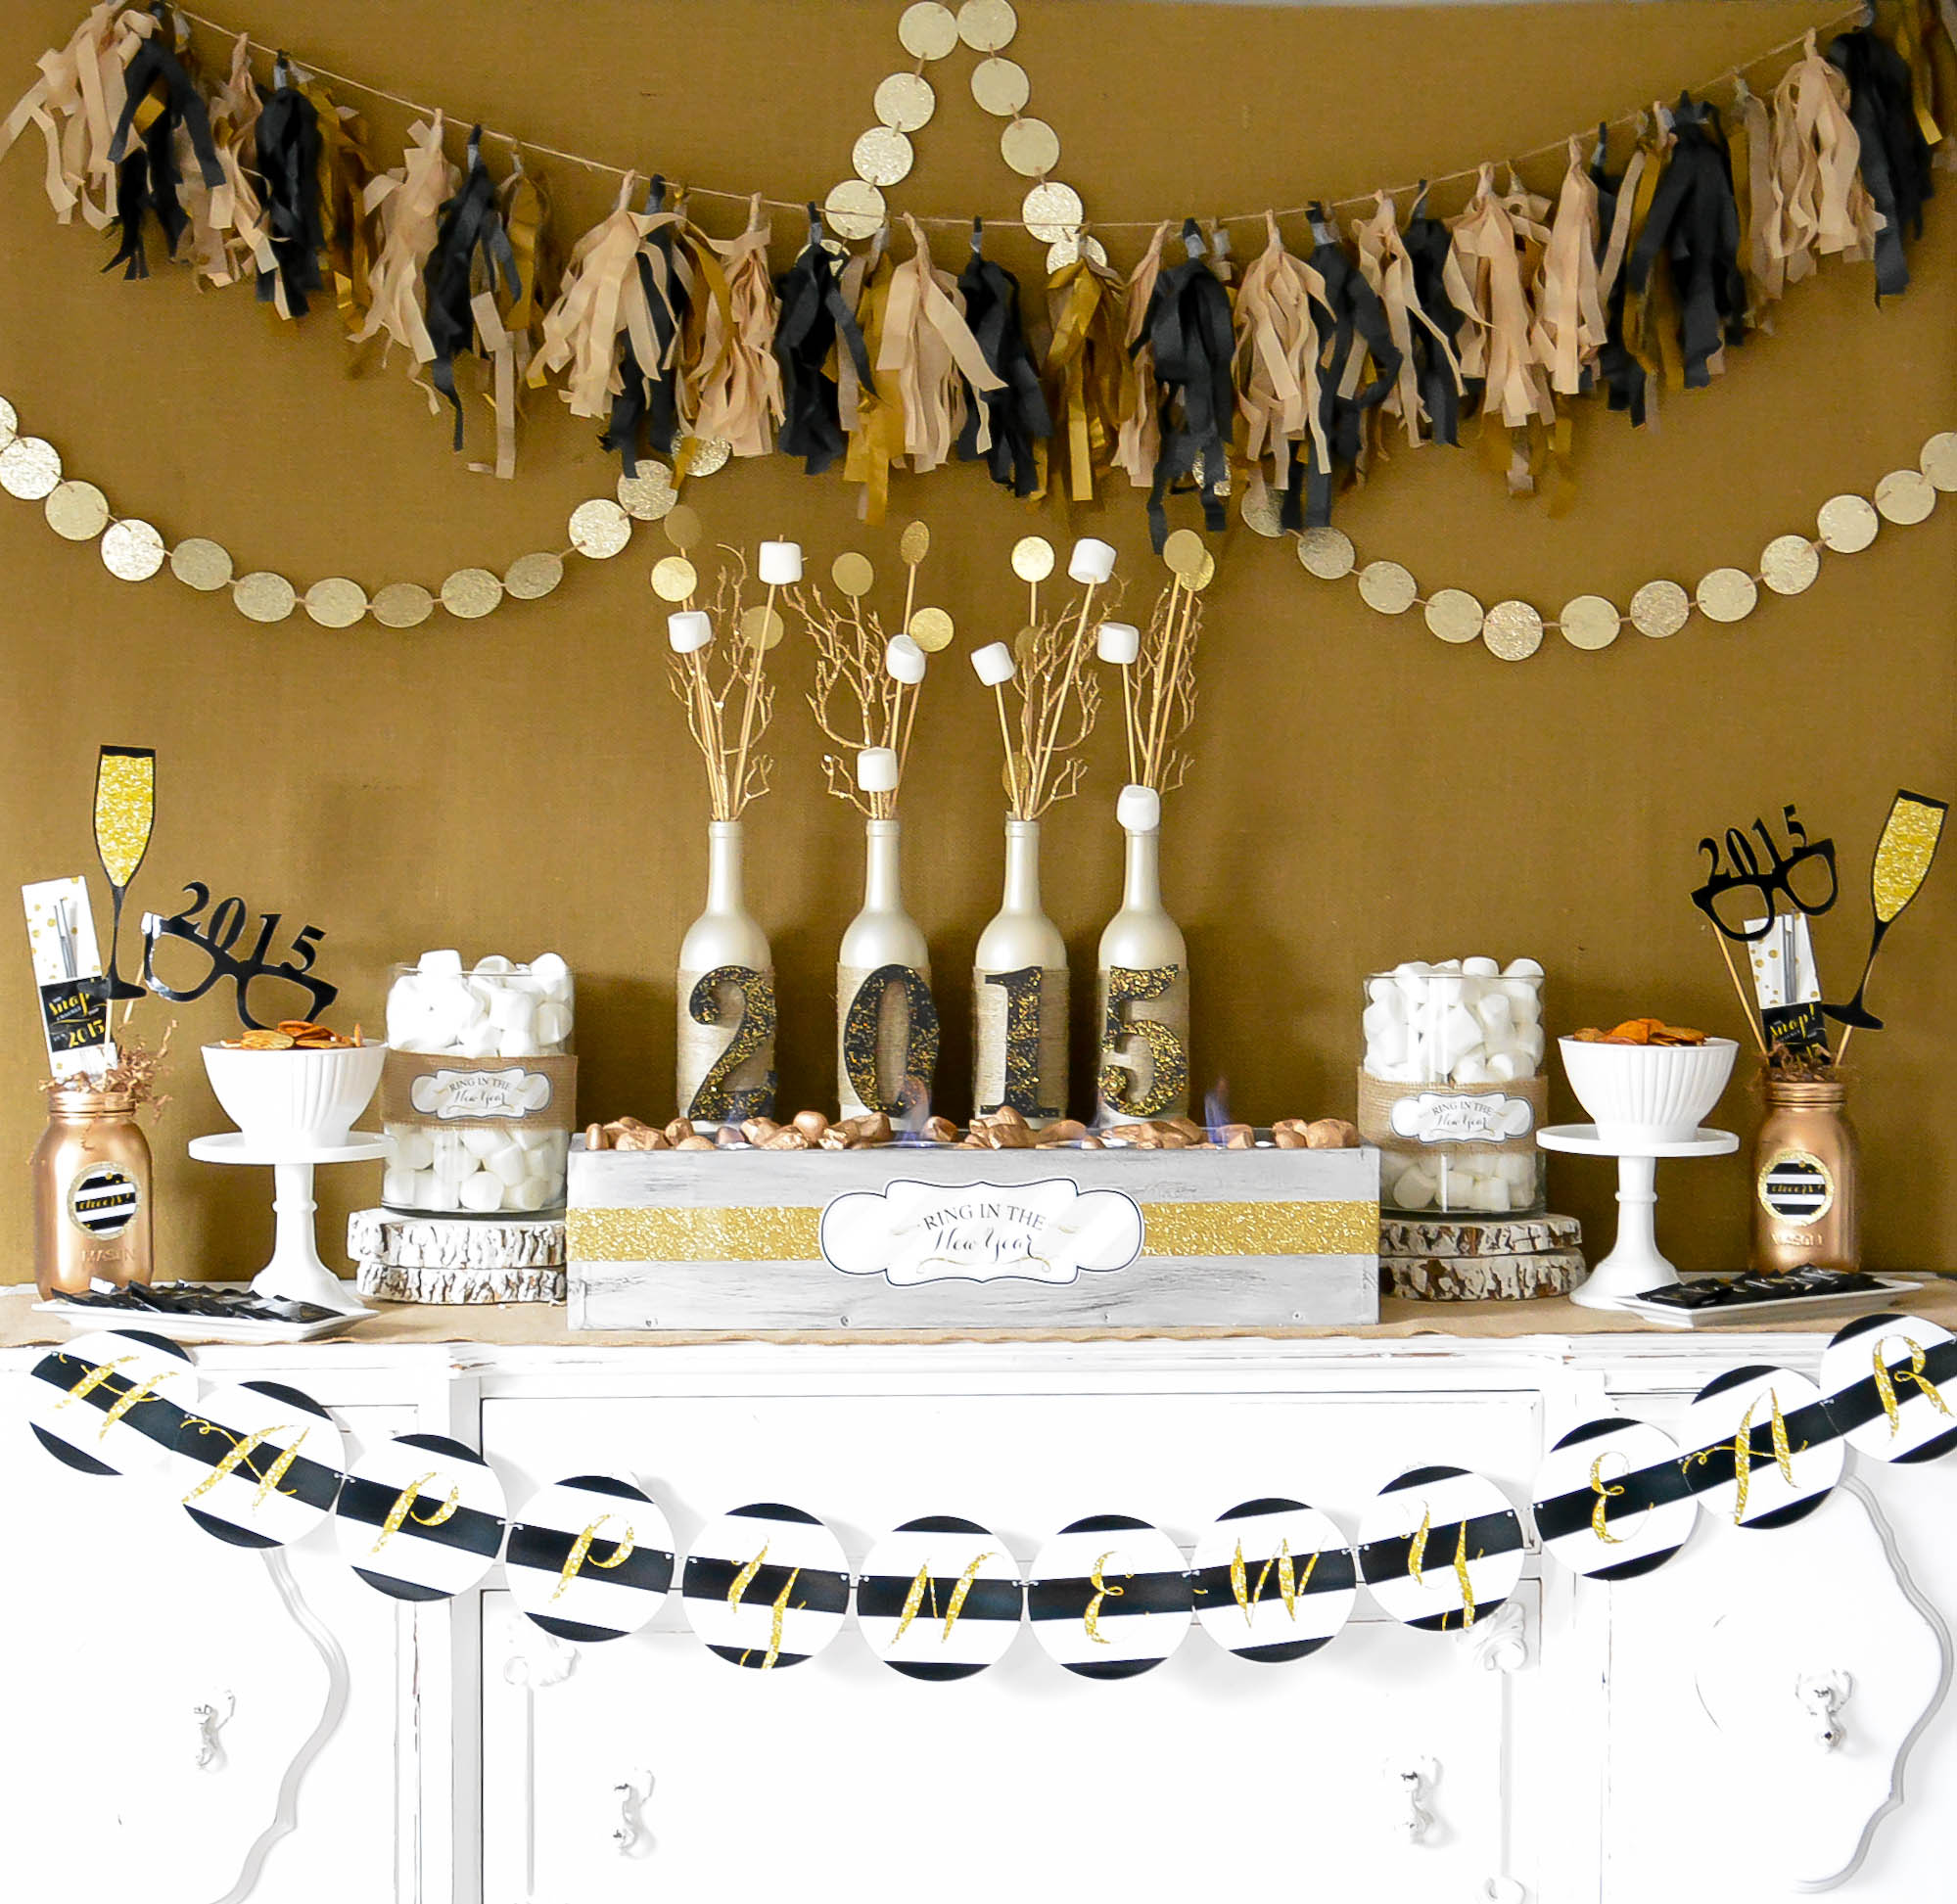 Sneak Peak - A Rustic Glam New Years - Anders Ruff Custom Designs, LLC